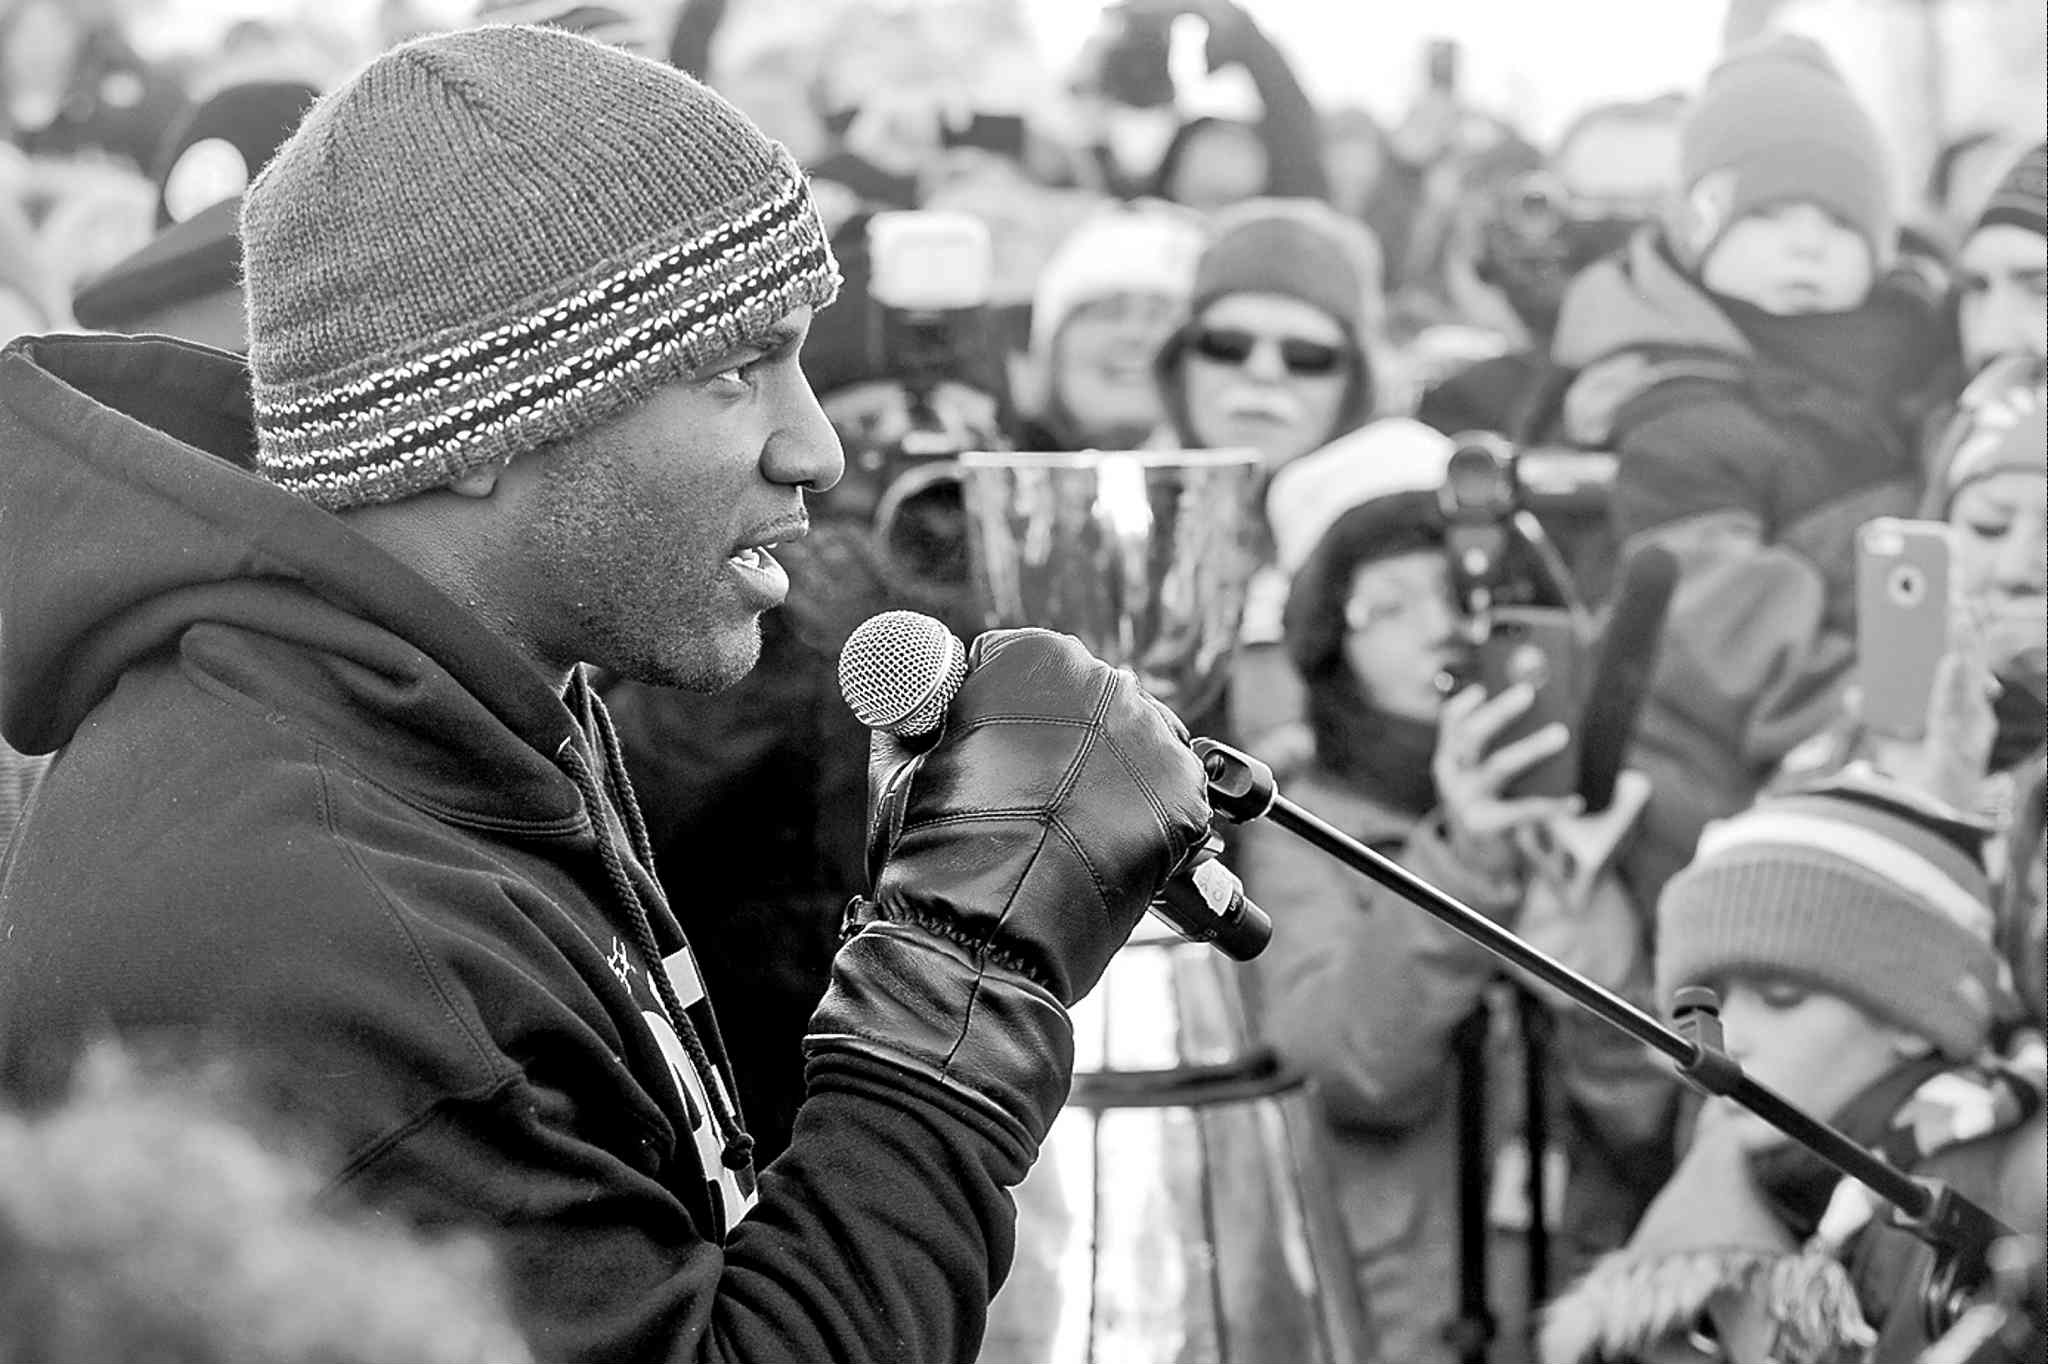 Saskatchewan Roughriders quarterback Darian Durant addresses the cheering throngs in Regina on Tuesday.